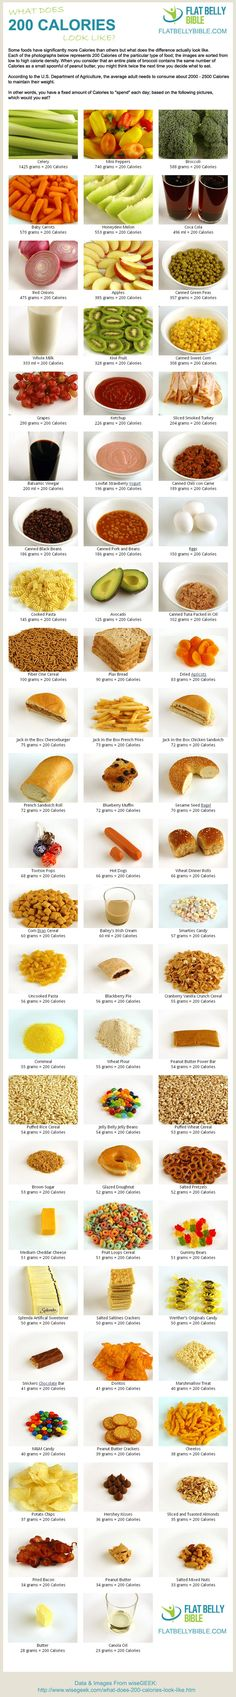 What 200 Calories Looks Like in Food via https://www.flatbellybible.com/462/what-200-calories-looks-like-in-food/